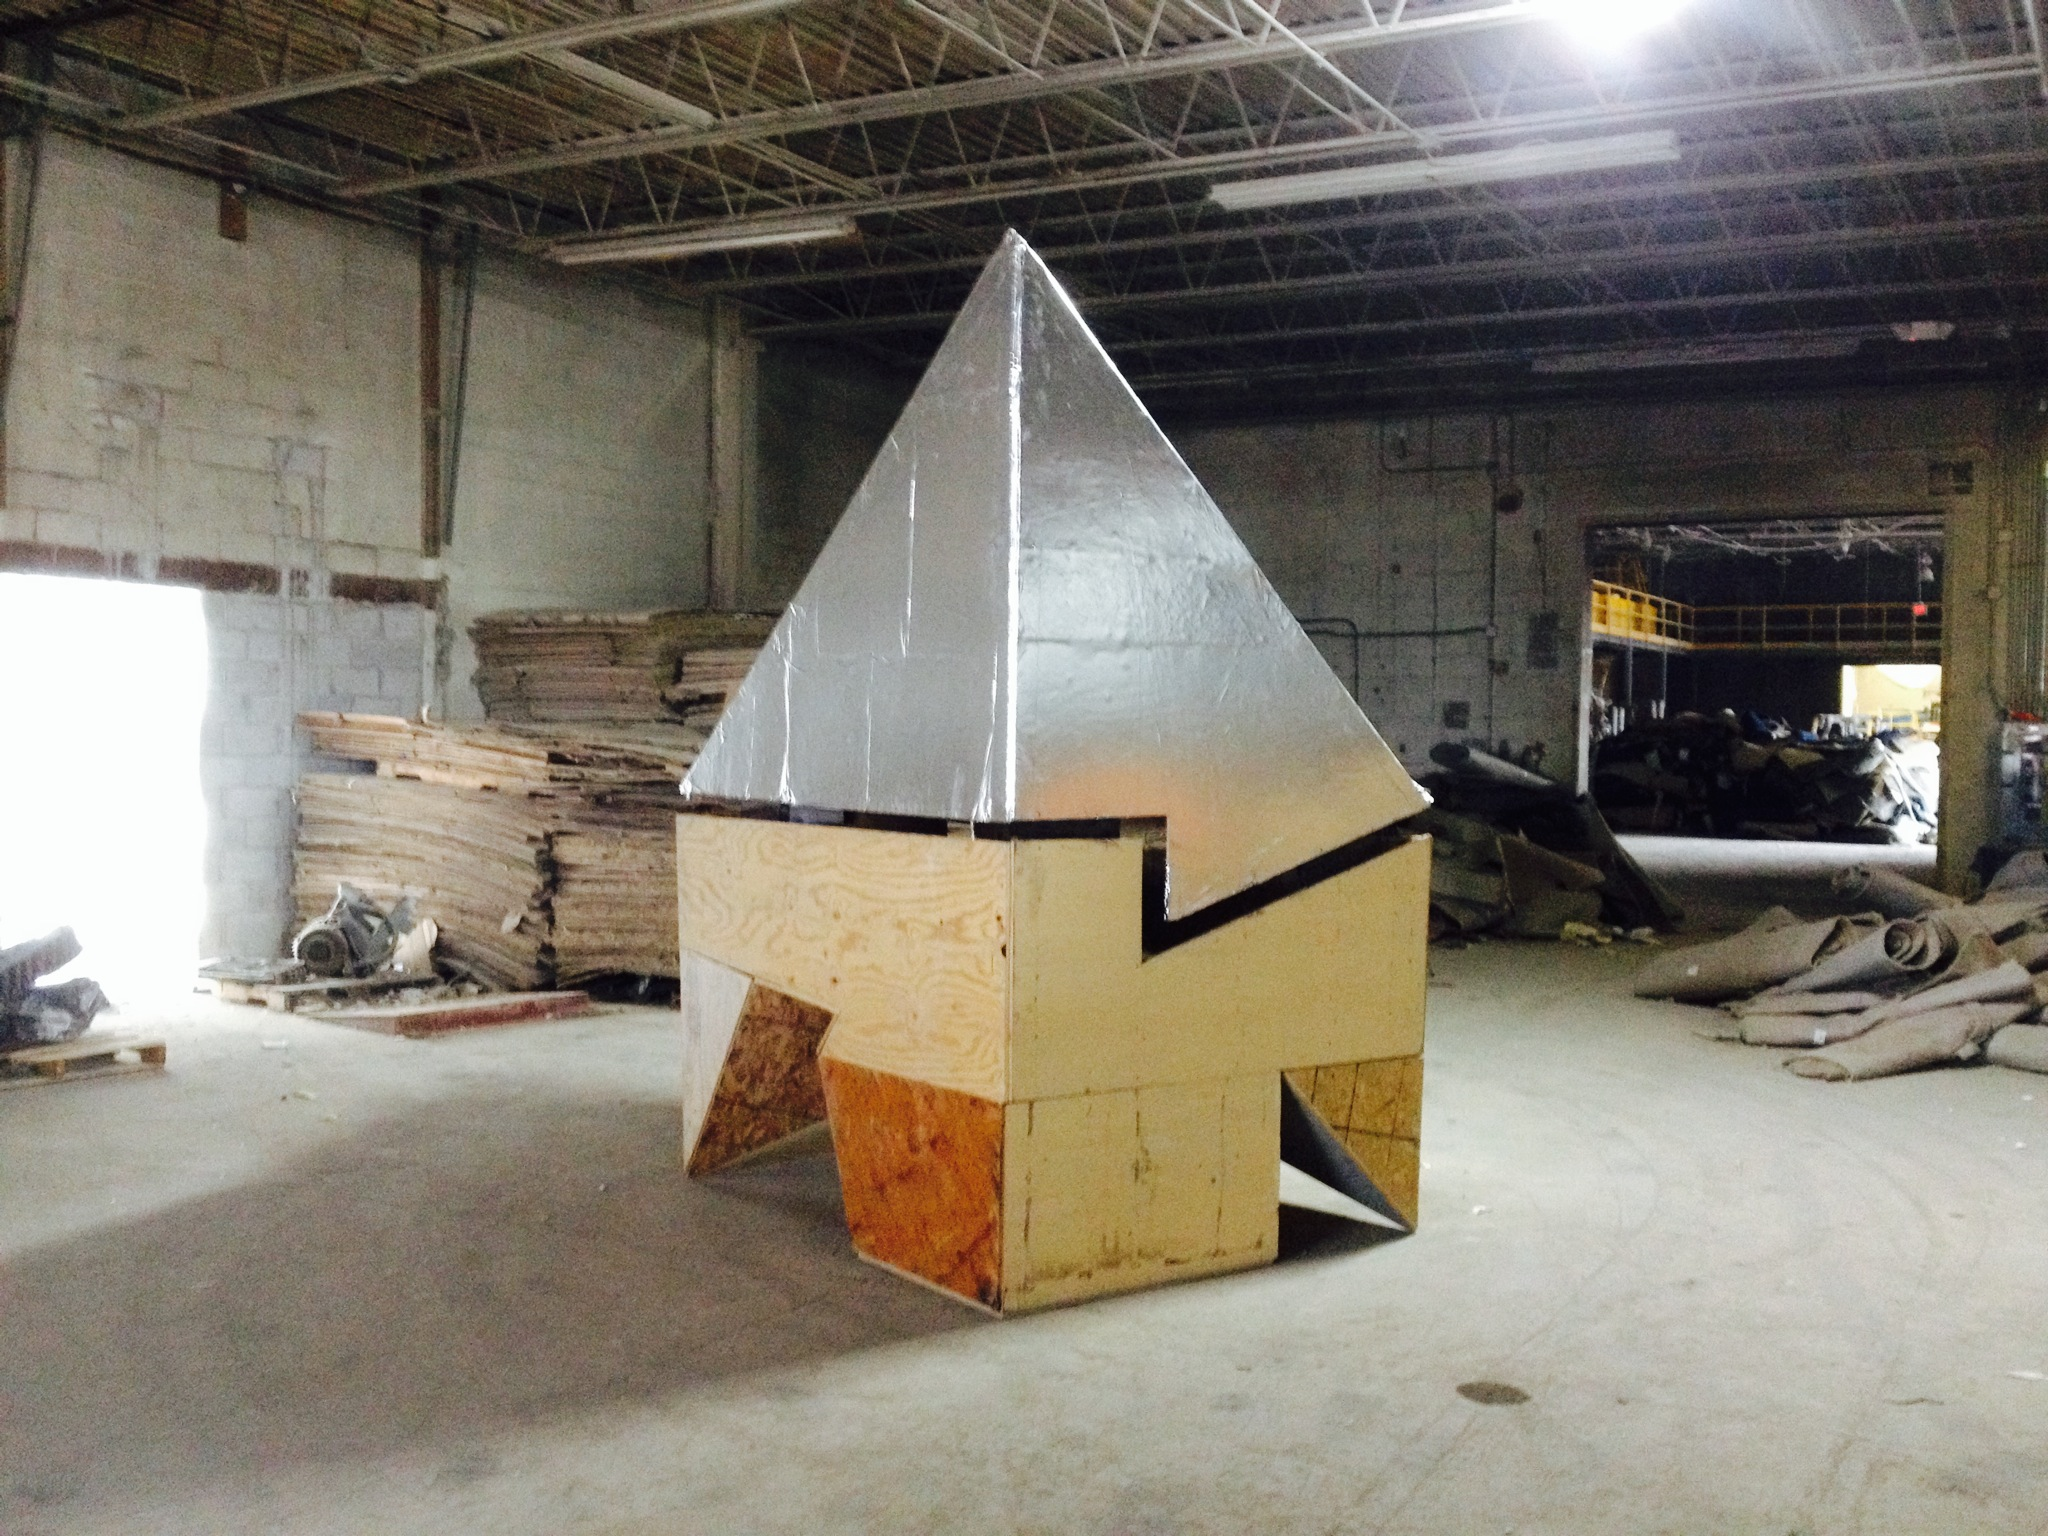 """Architect Simon Kim and artist Billy Dufala produced the first of three projects through RAIR. Kim and Dufala have collaborated in the past and continued their conversation for this first residency by asking the question: """"What are discerning elements of citizenship, governance, and identification in a city made of pieces of past colonial powers?"""" They constructed a house for the Minister of Foreign Affairs of SURA – an imagined amalgamation of Paris, London, and Tokyo neighborhoods. The building, fabricated and demolished within thirty-six hours on site at RAIR, existed within the ICA gallery via documentation.       Ministers of Foreign Affairs    Ibañez Kim Studio     ICA 50: exhibition"""